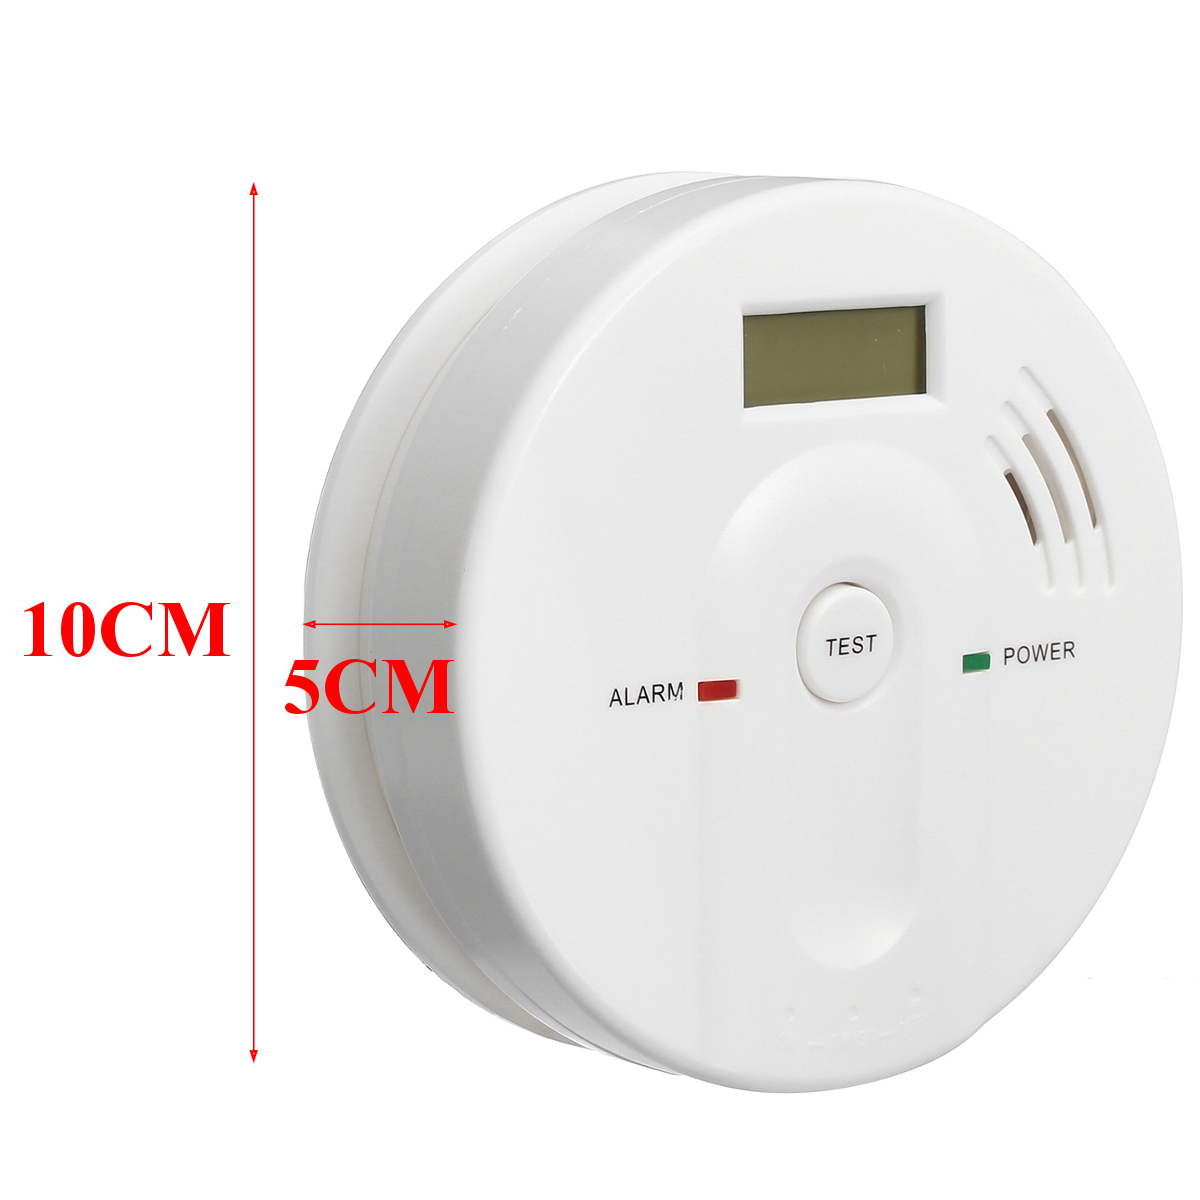 hq smoke fire alarm sensor detector security system for